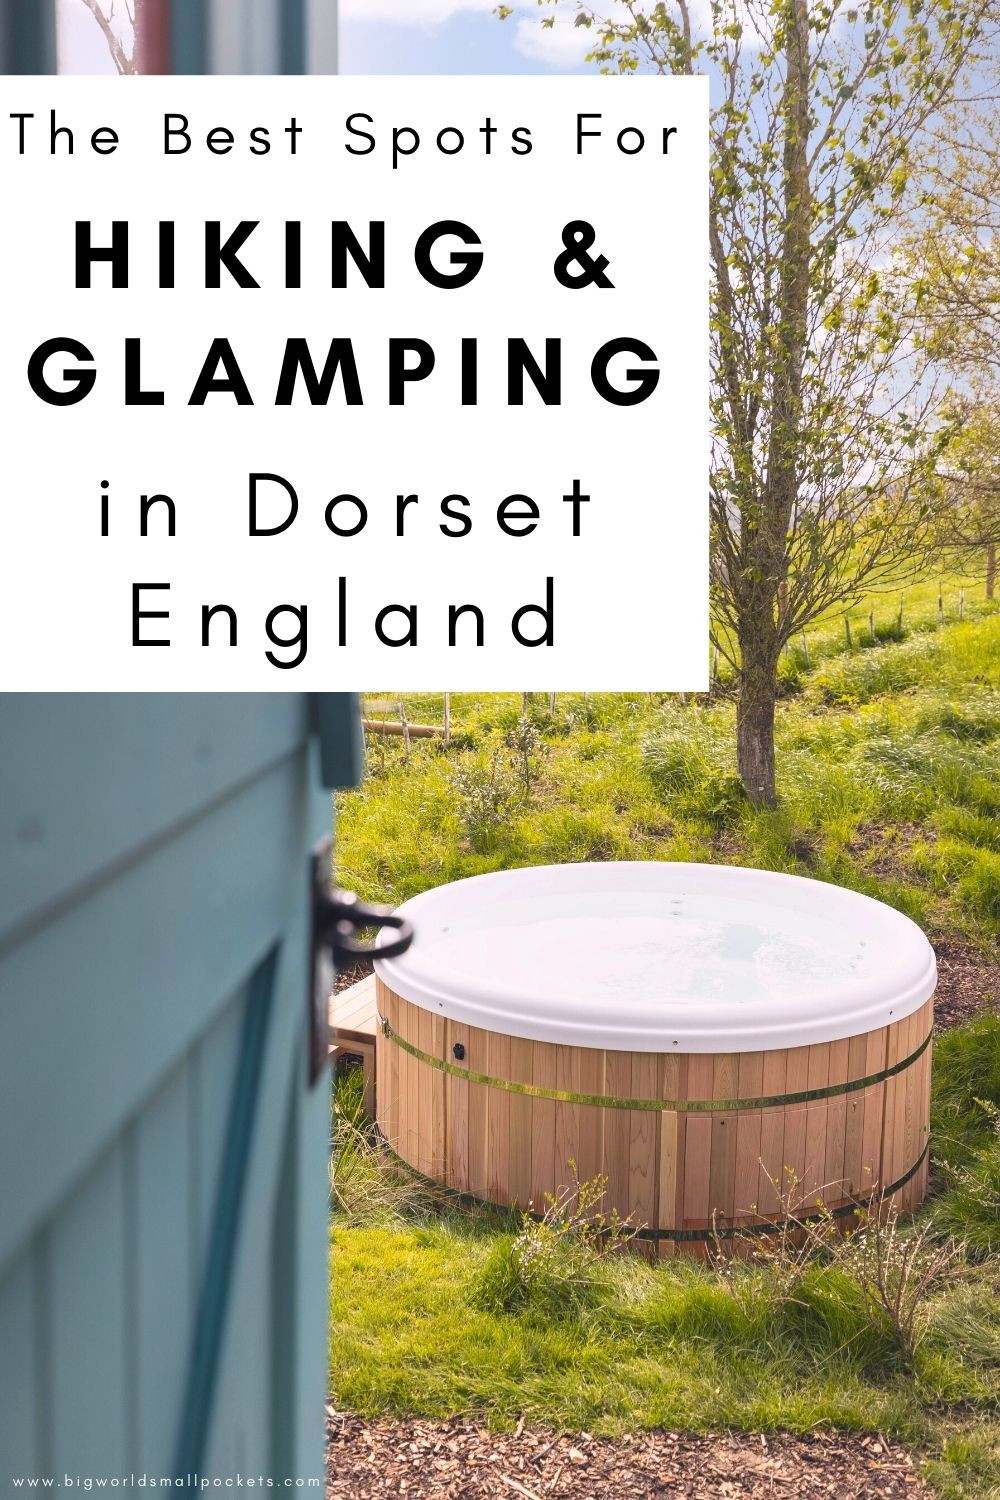 The Best Spots For Hiking & Glamping in Dorset